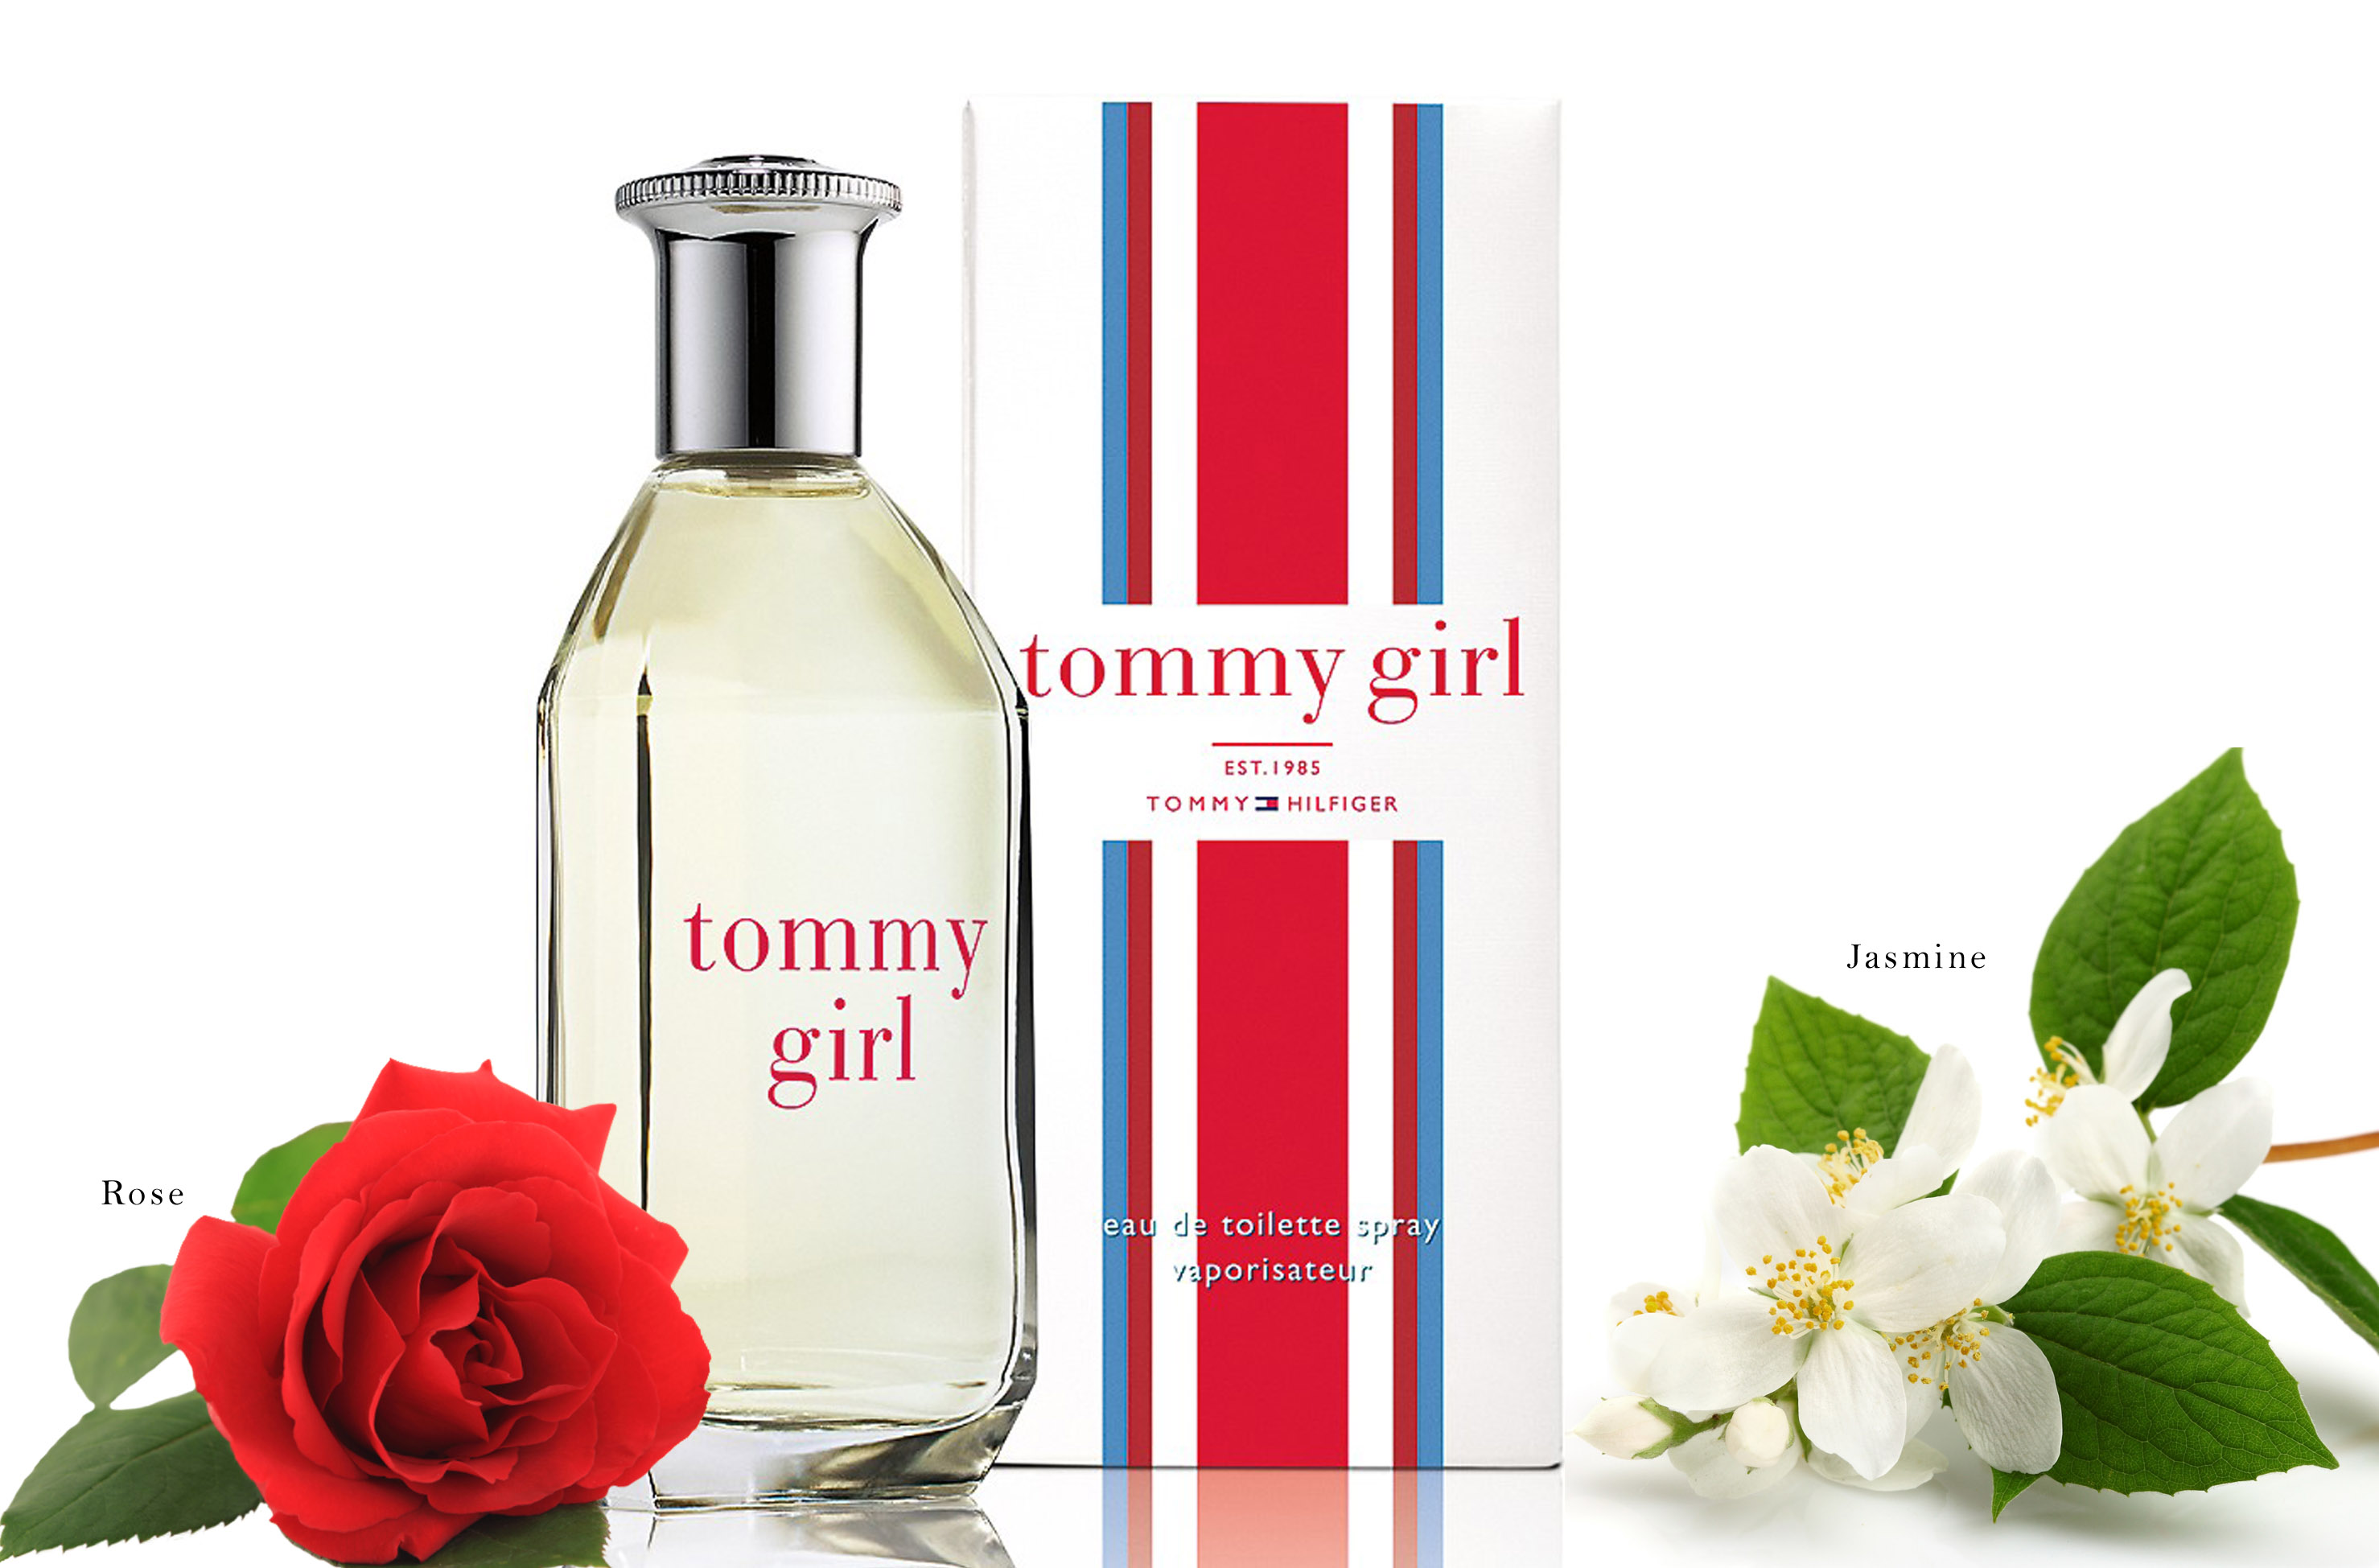 dbbfee4f5104 Summer Fragrances For Her From Tommy Hilfiger   Britney Spears ...